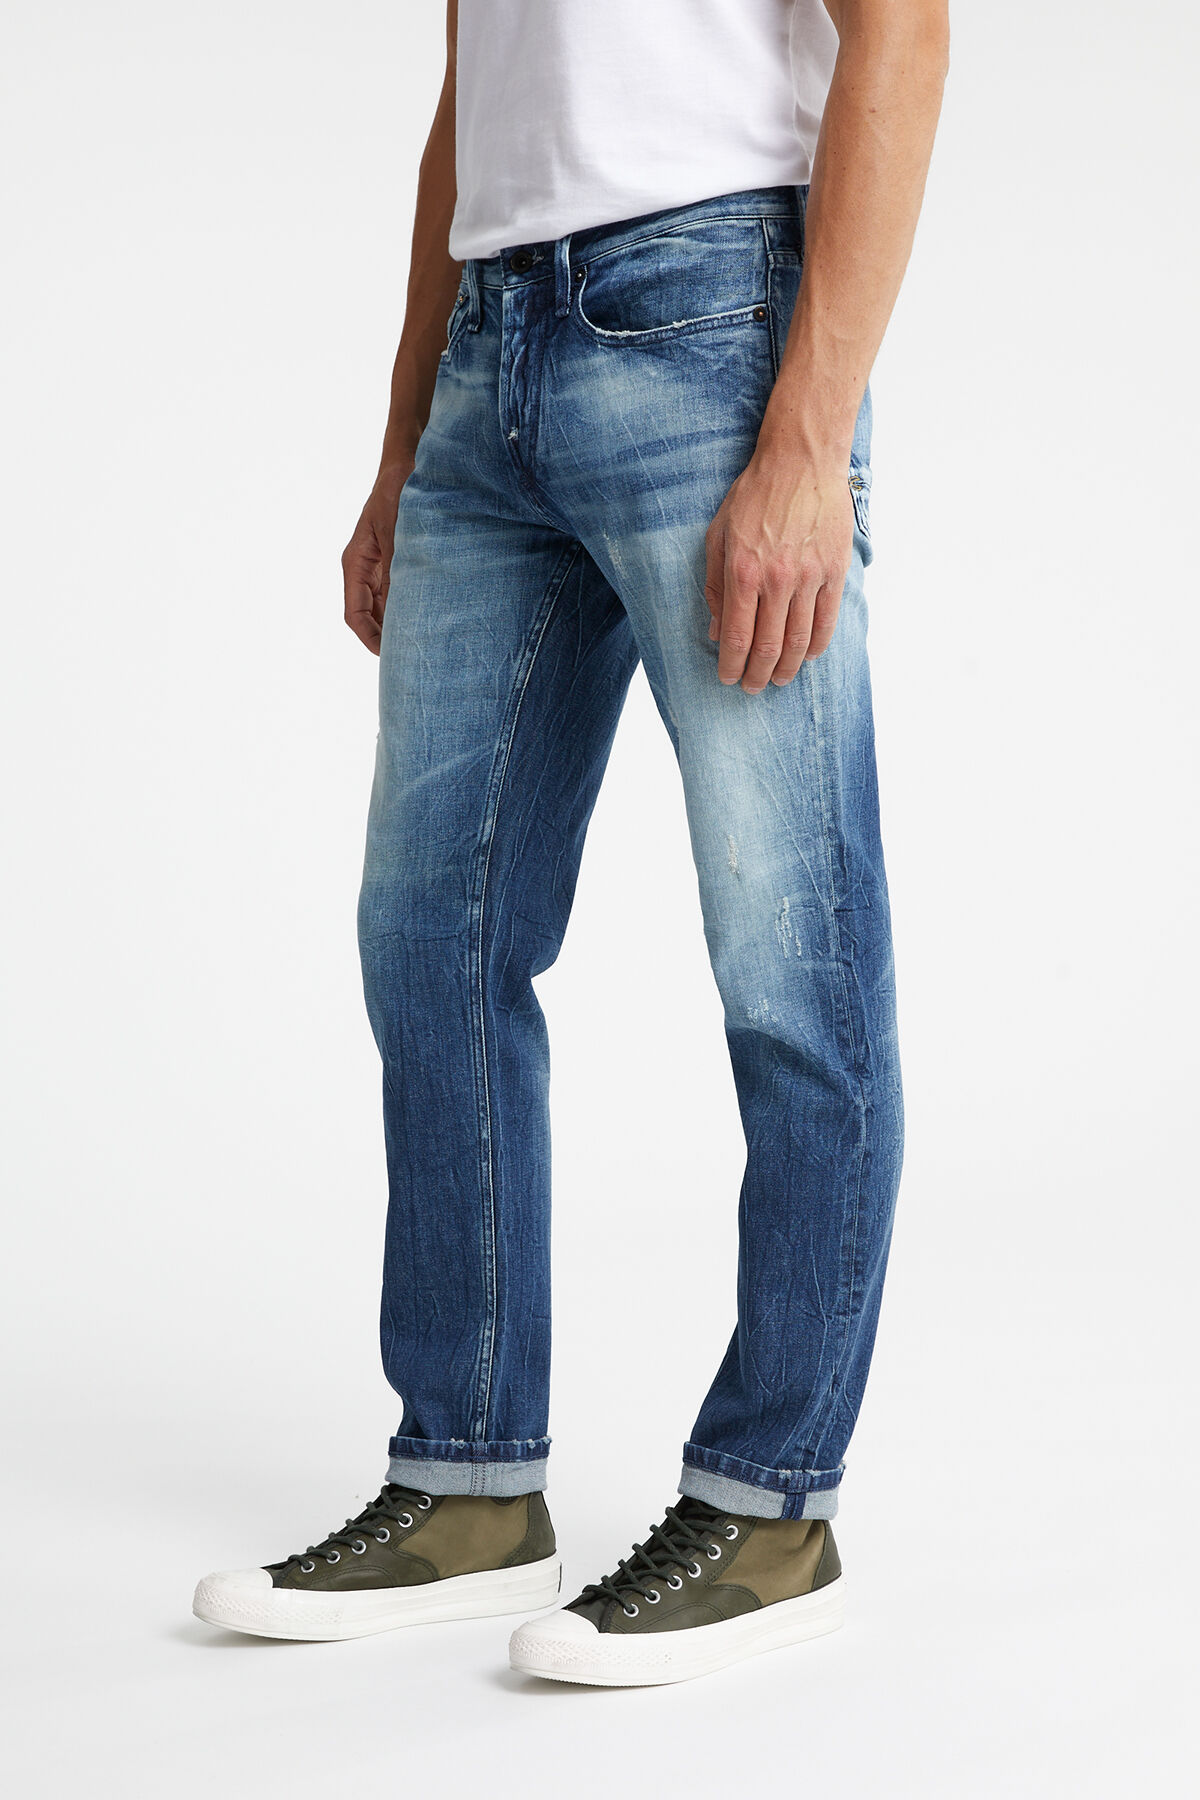 RAZOR Ripped Indigo Denim - Slim Fit